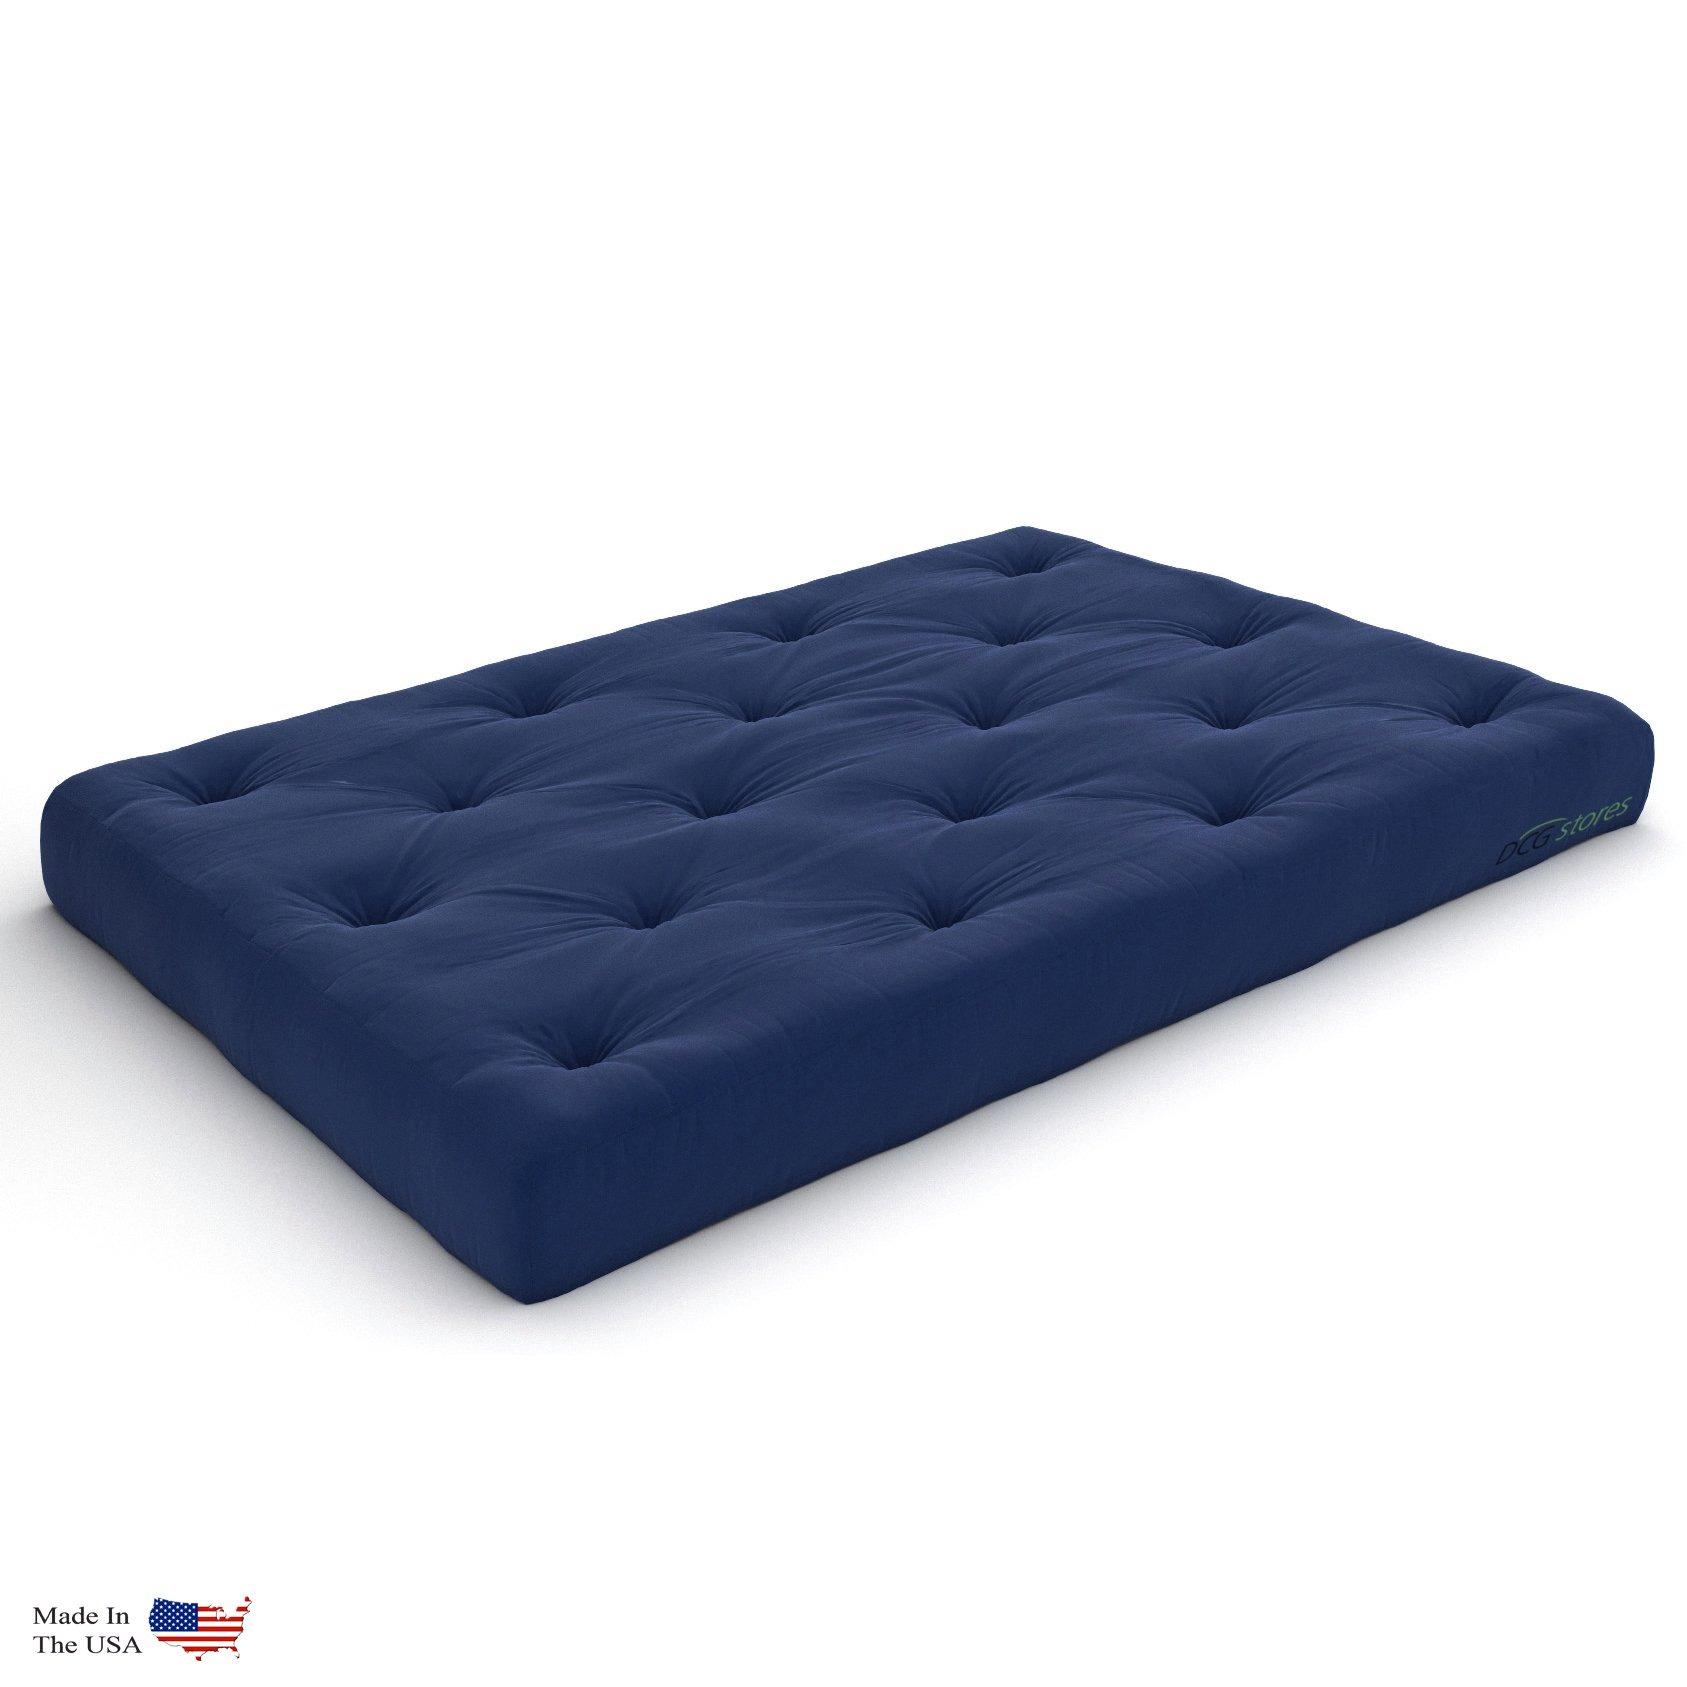 Nirvana Futons Premier Pocket Coil 10-Inch Queen Futon Mattress, Navy Twill - Made in USA by Nirvana Futons